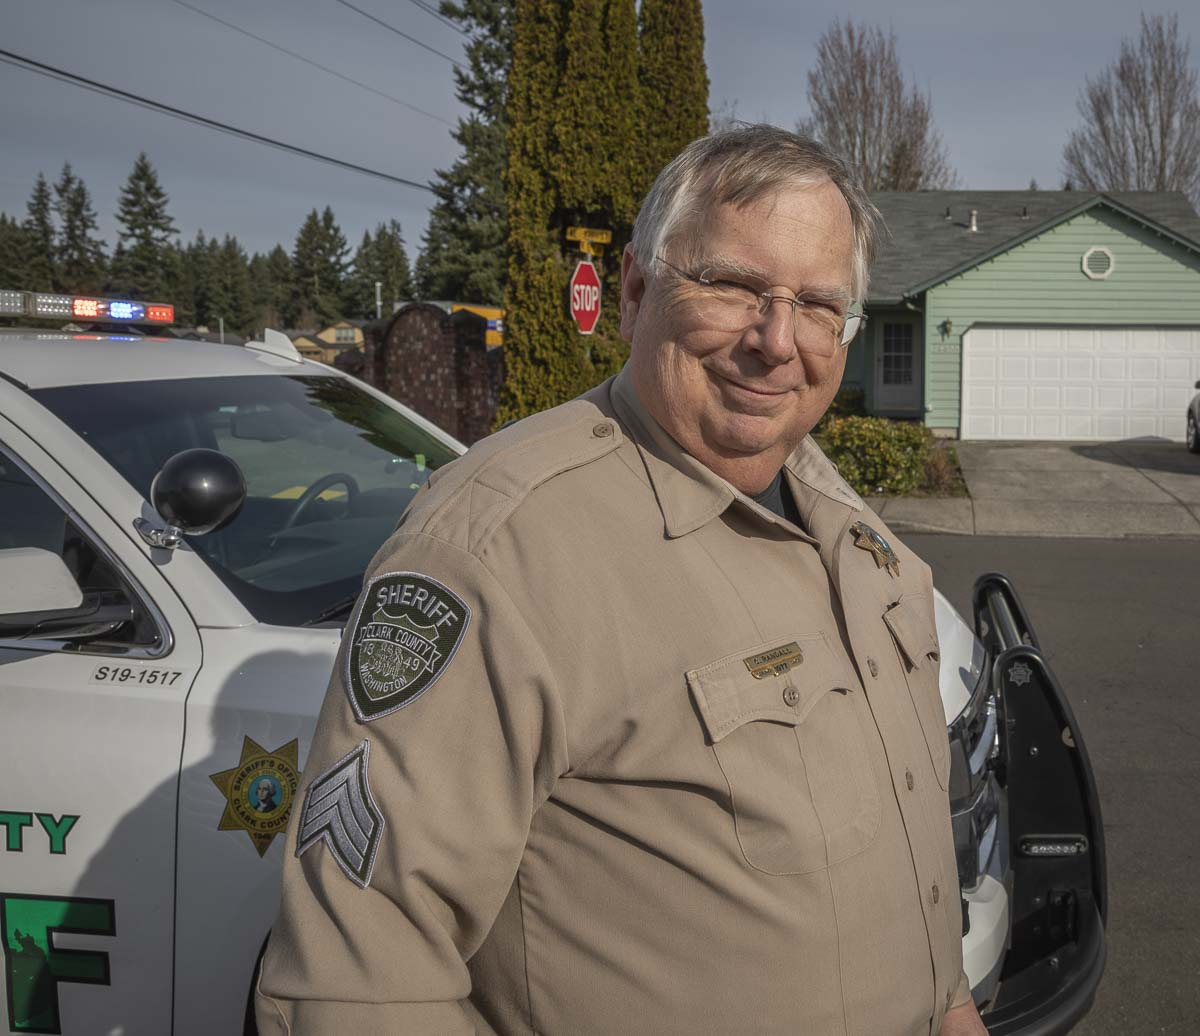 Sergeant Craig Randall, Clark County Sheriff's Office. Photo by Jacob Granneman